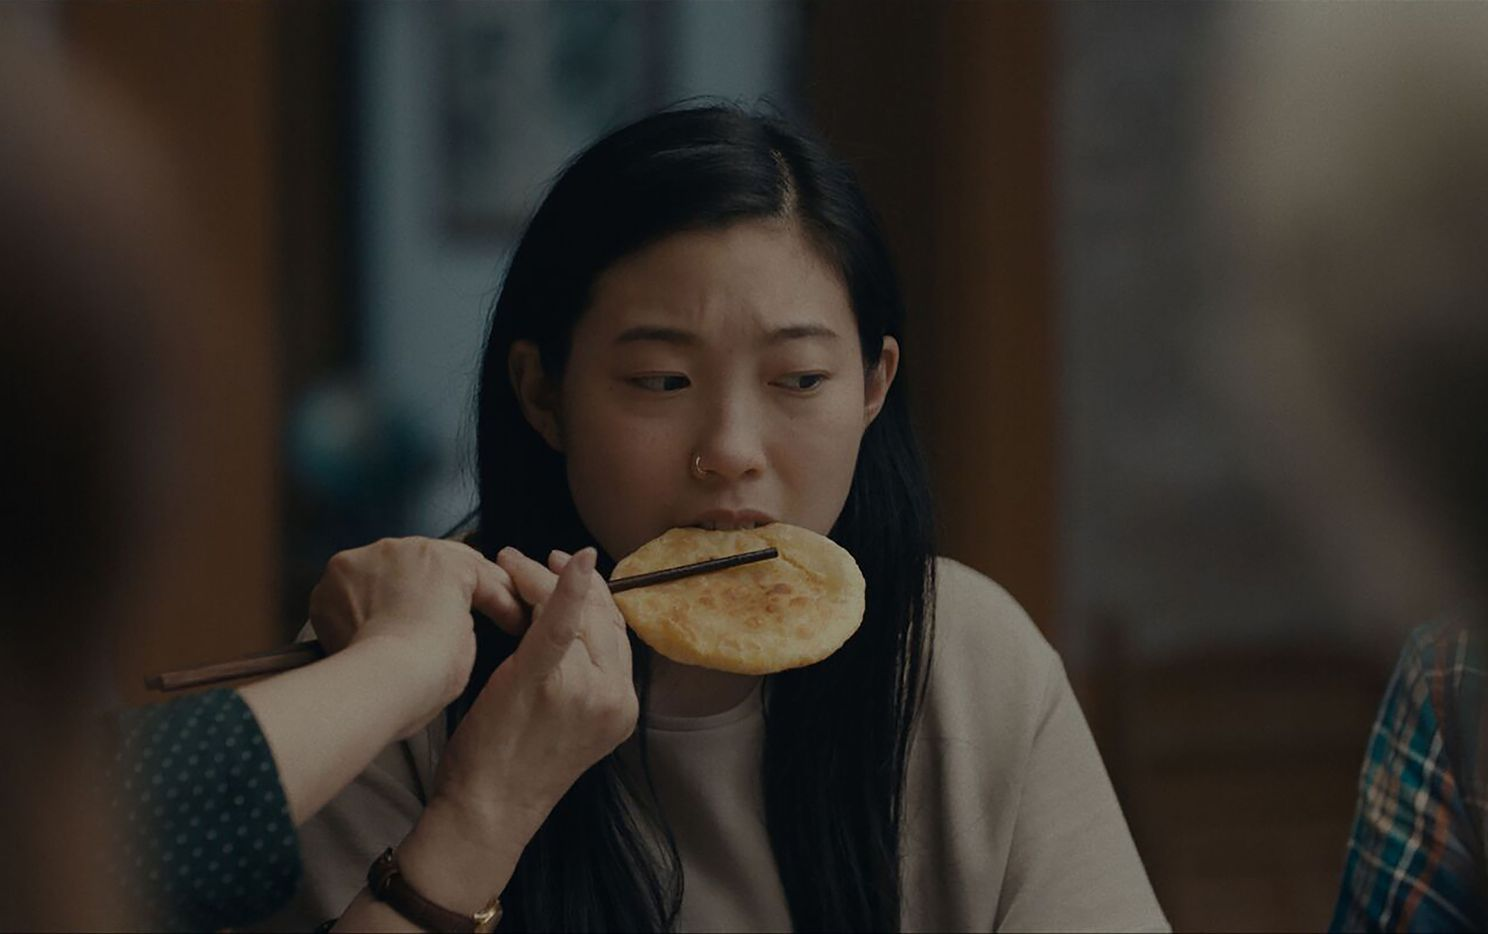 Billi (Awkwafina) accepts food from her grandmother's chopsticks in The Farewell.